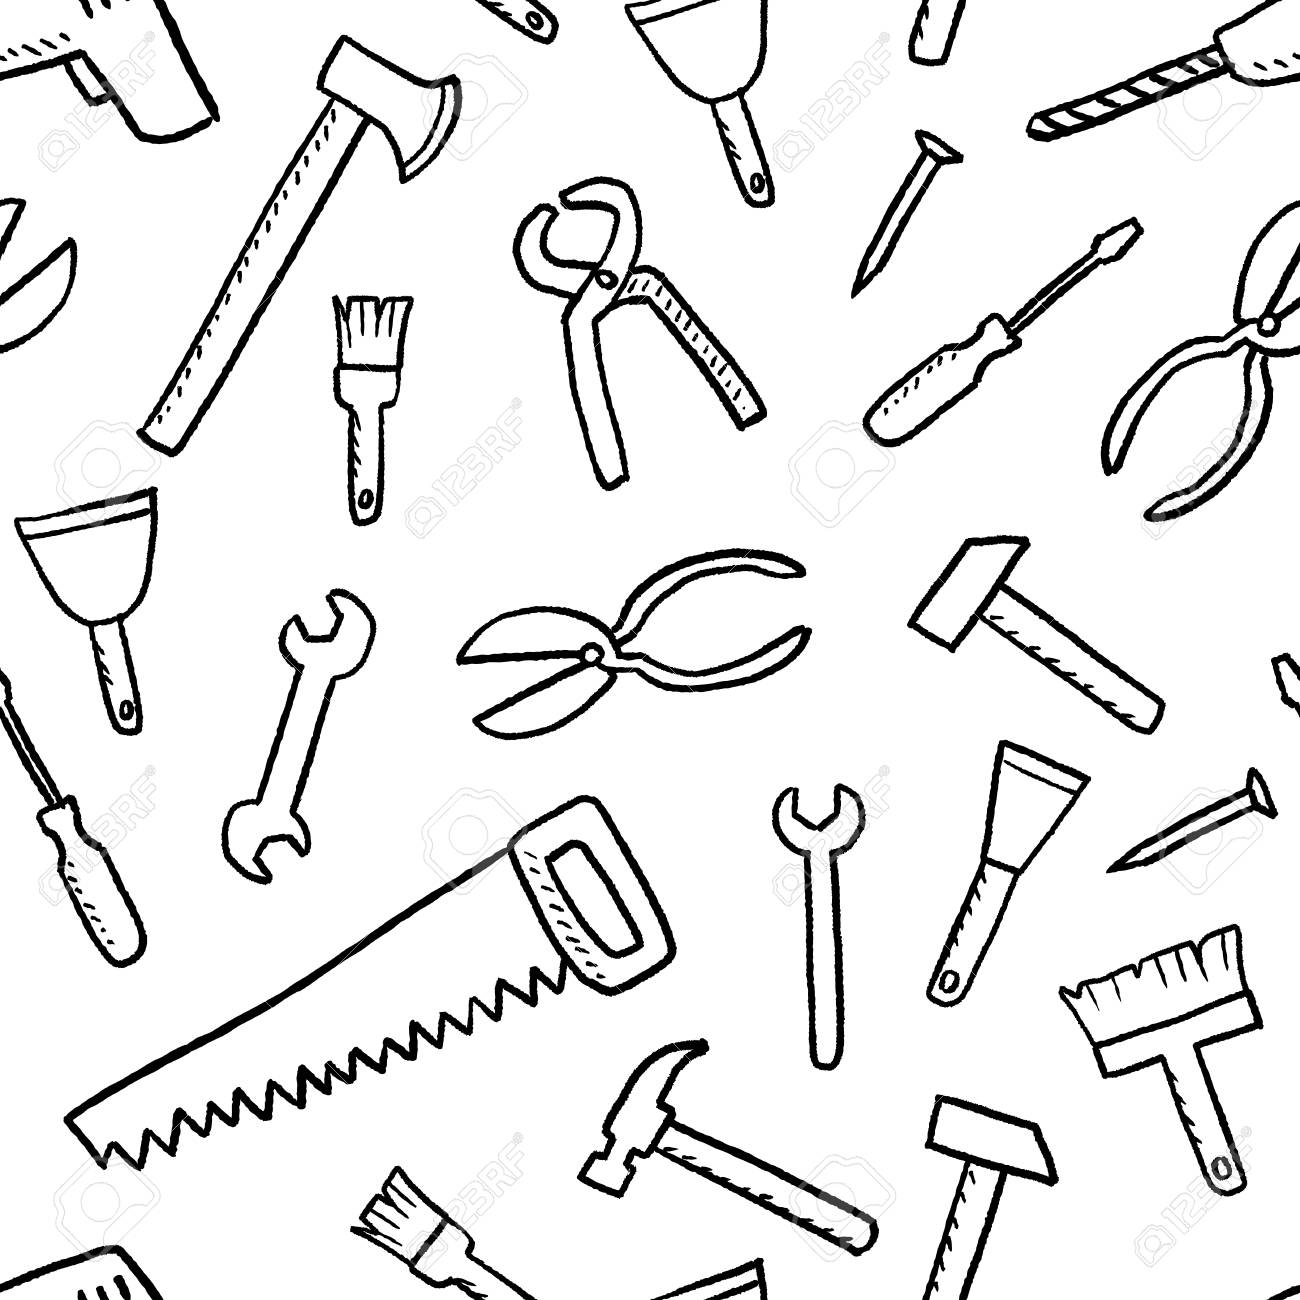 Tools Texture Seamless Background Diy And Woodworking Tools